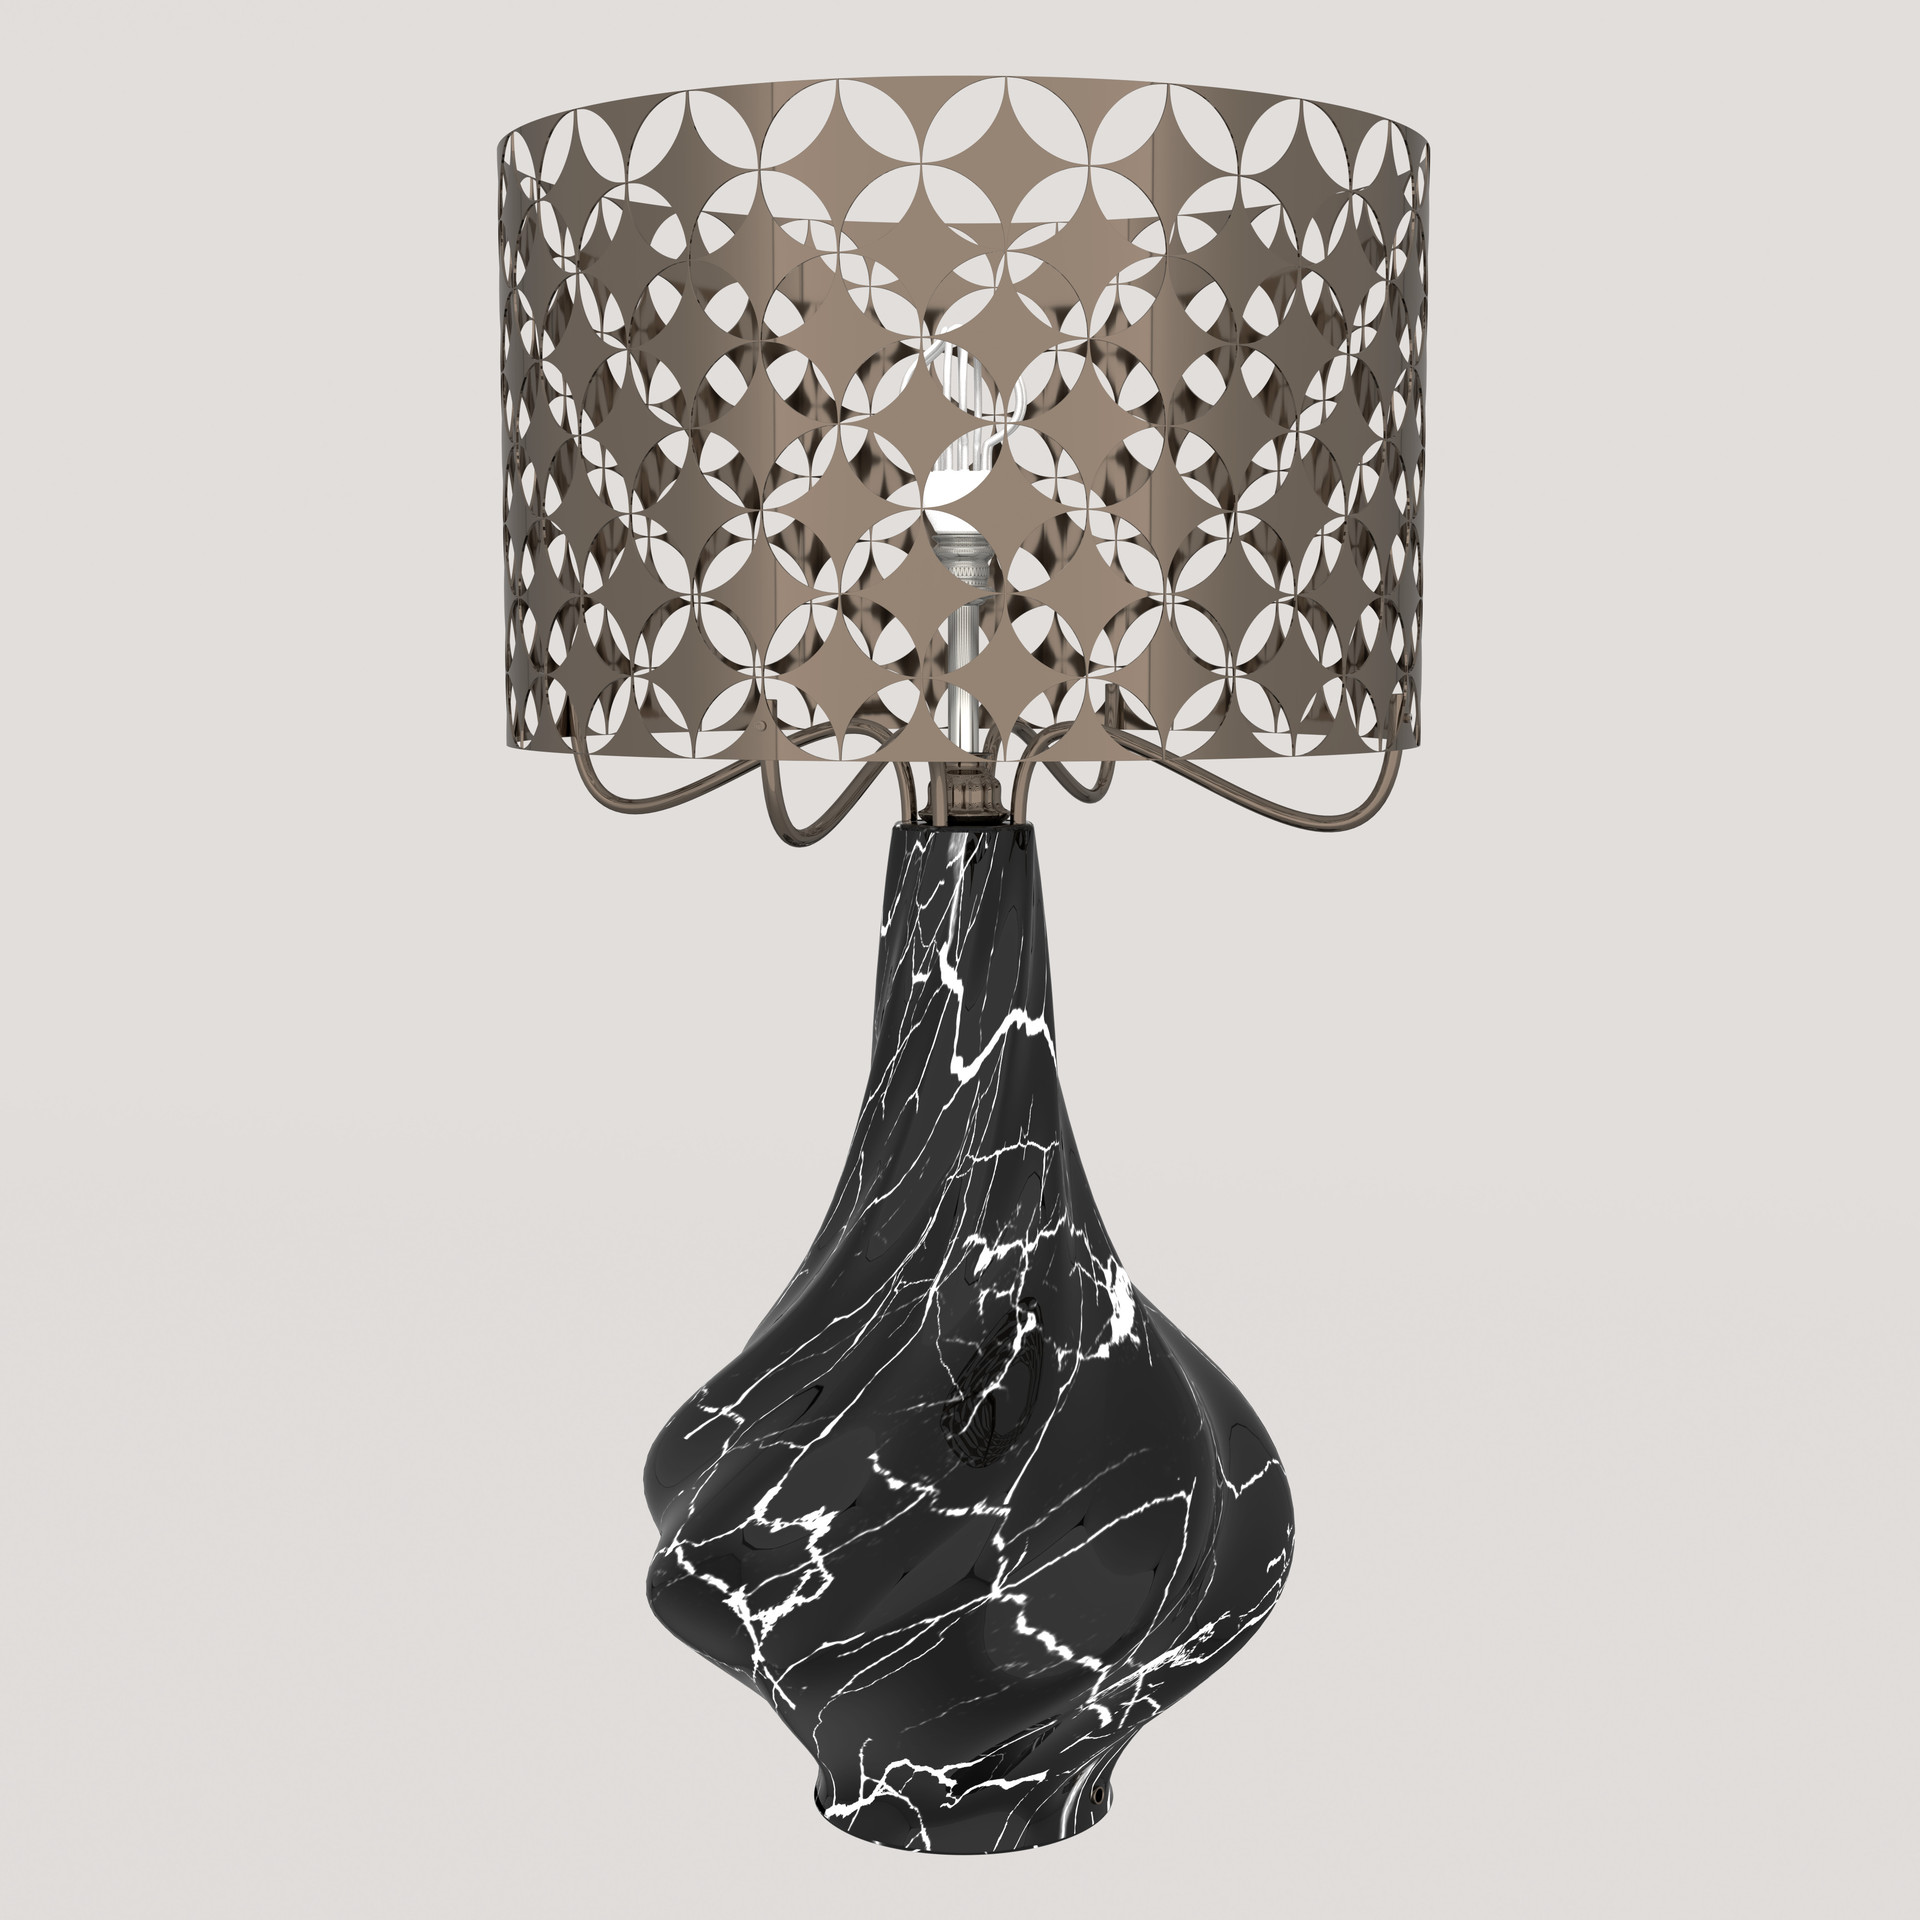 lanterns category lantern lighting xxx world hanging do latika market arabic zinc antiqued lamp